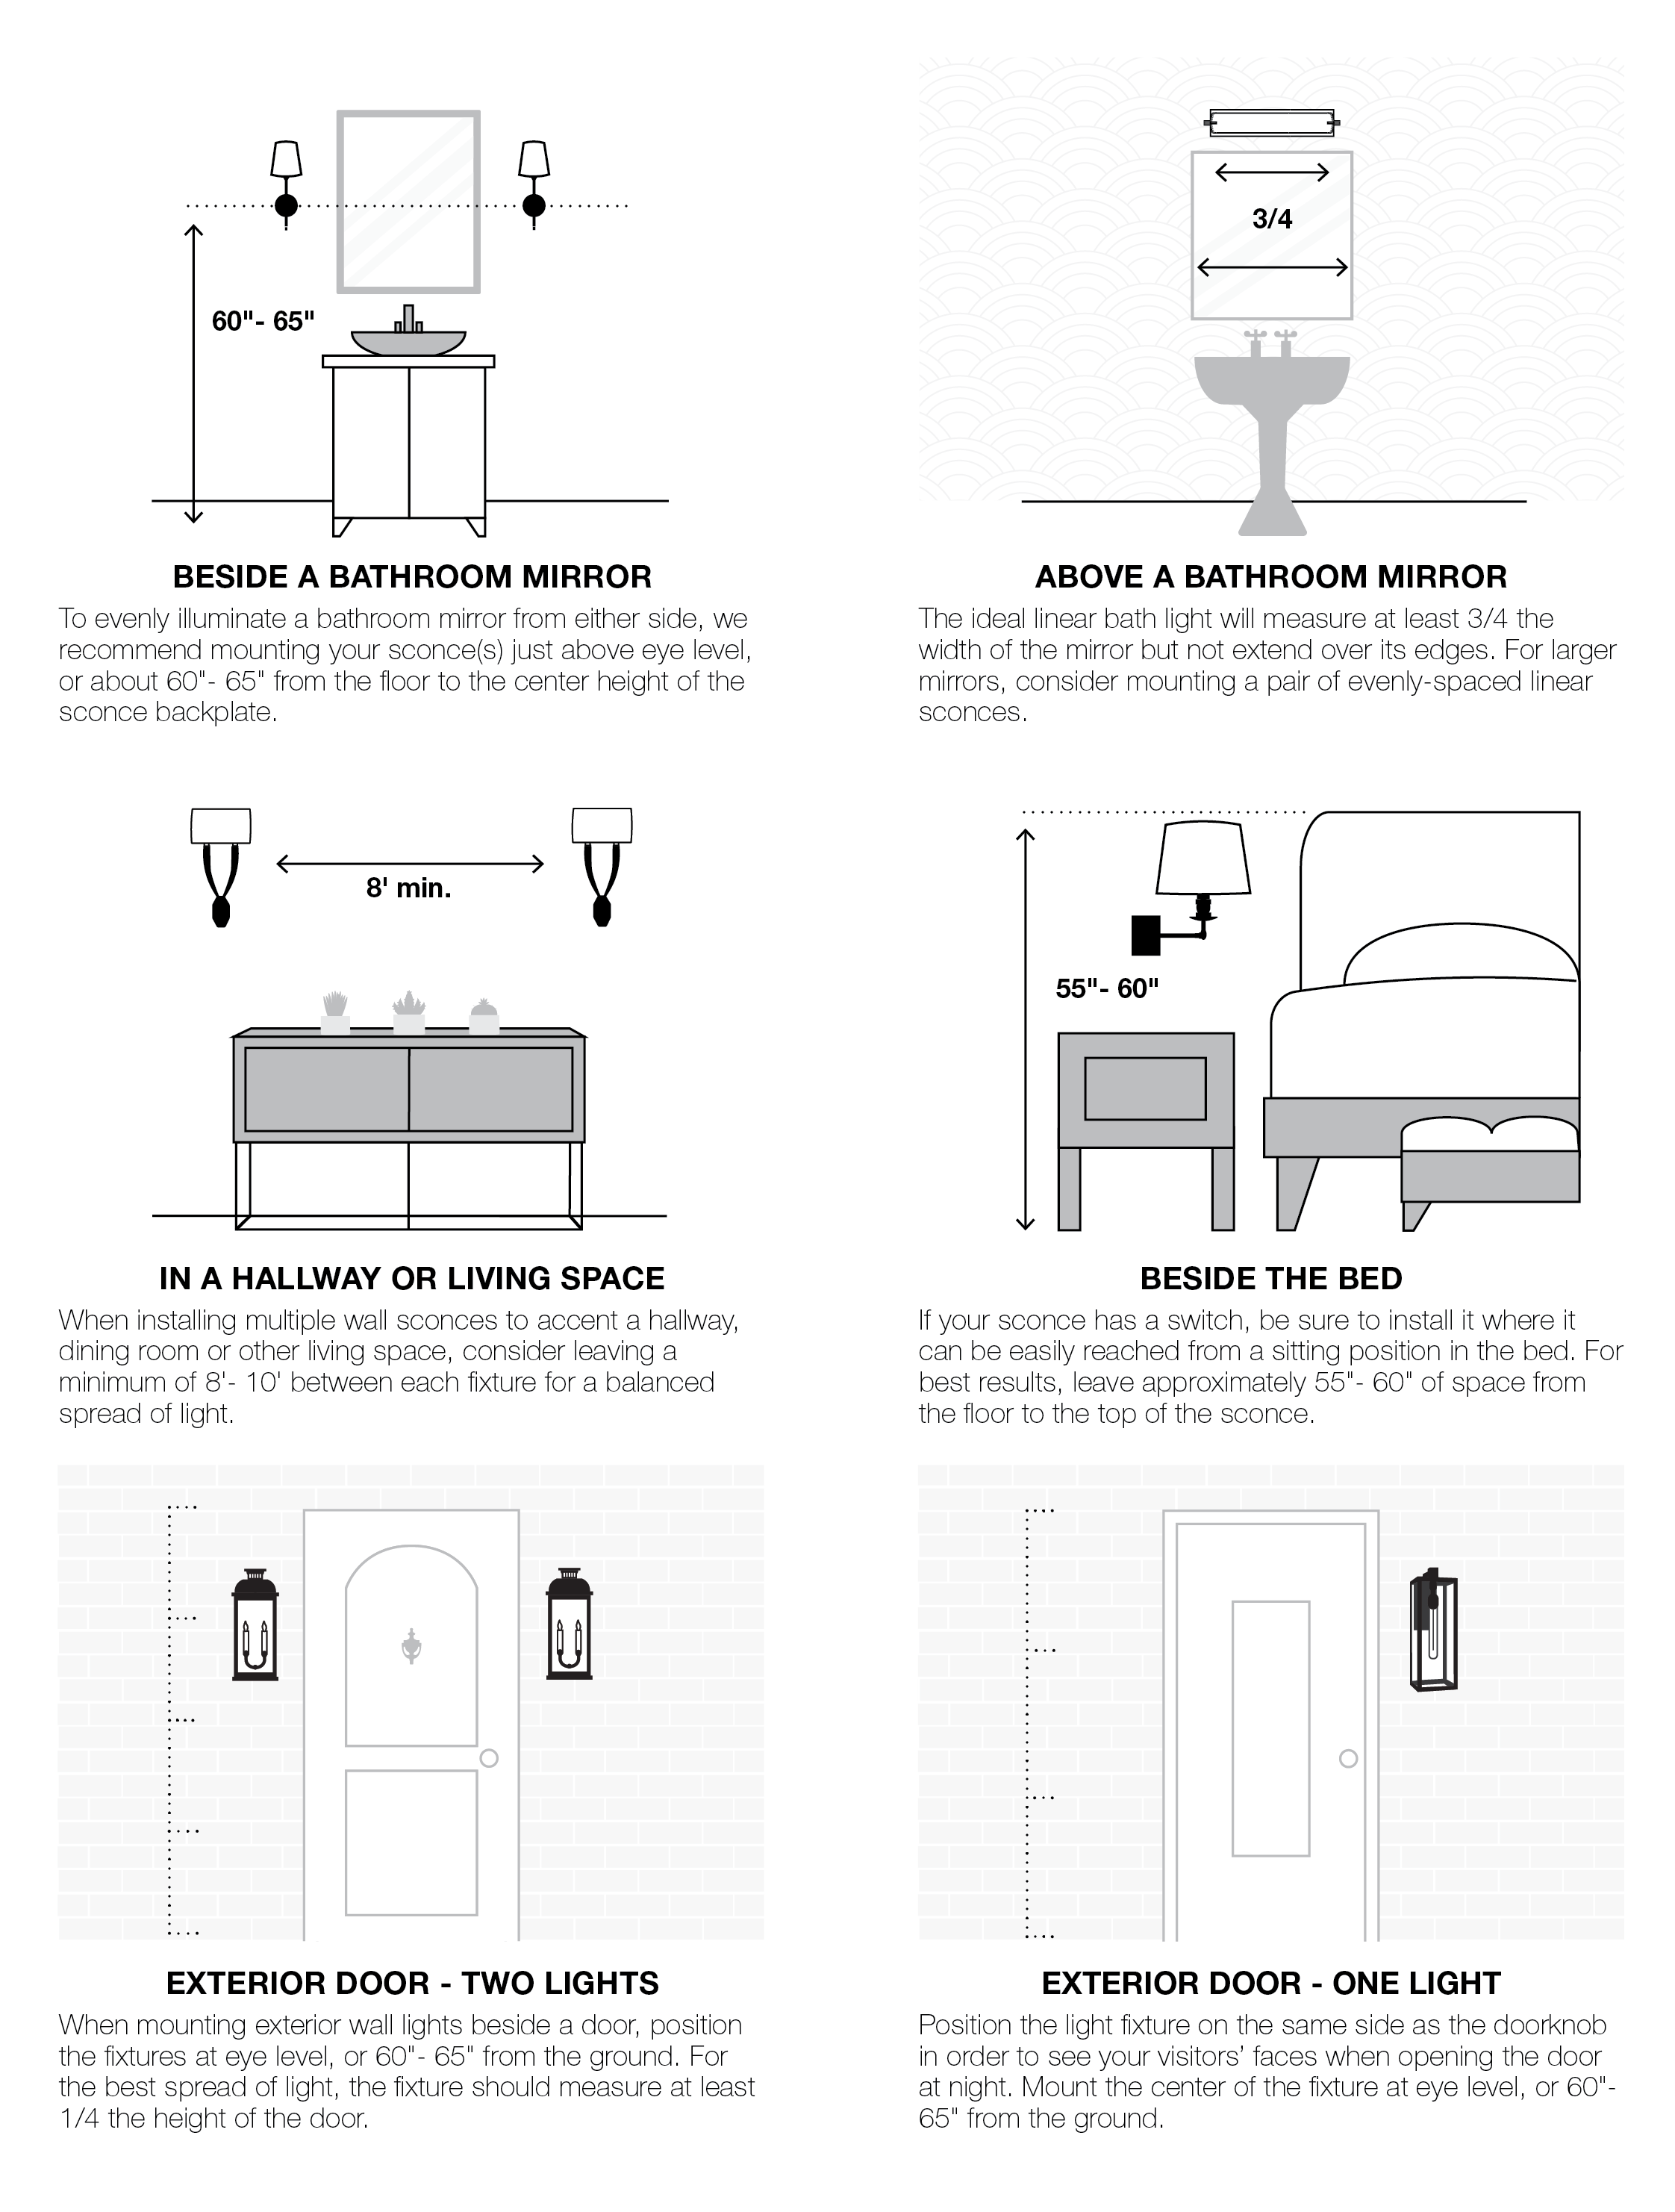 Wall Tips Interior Design Guide Bathroom Sconces Interior Design Tips